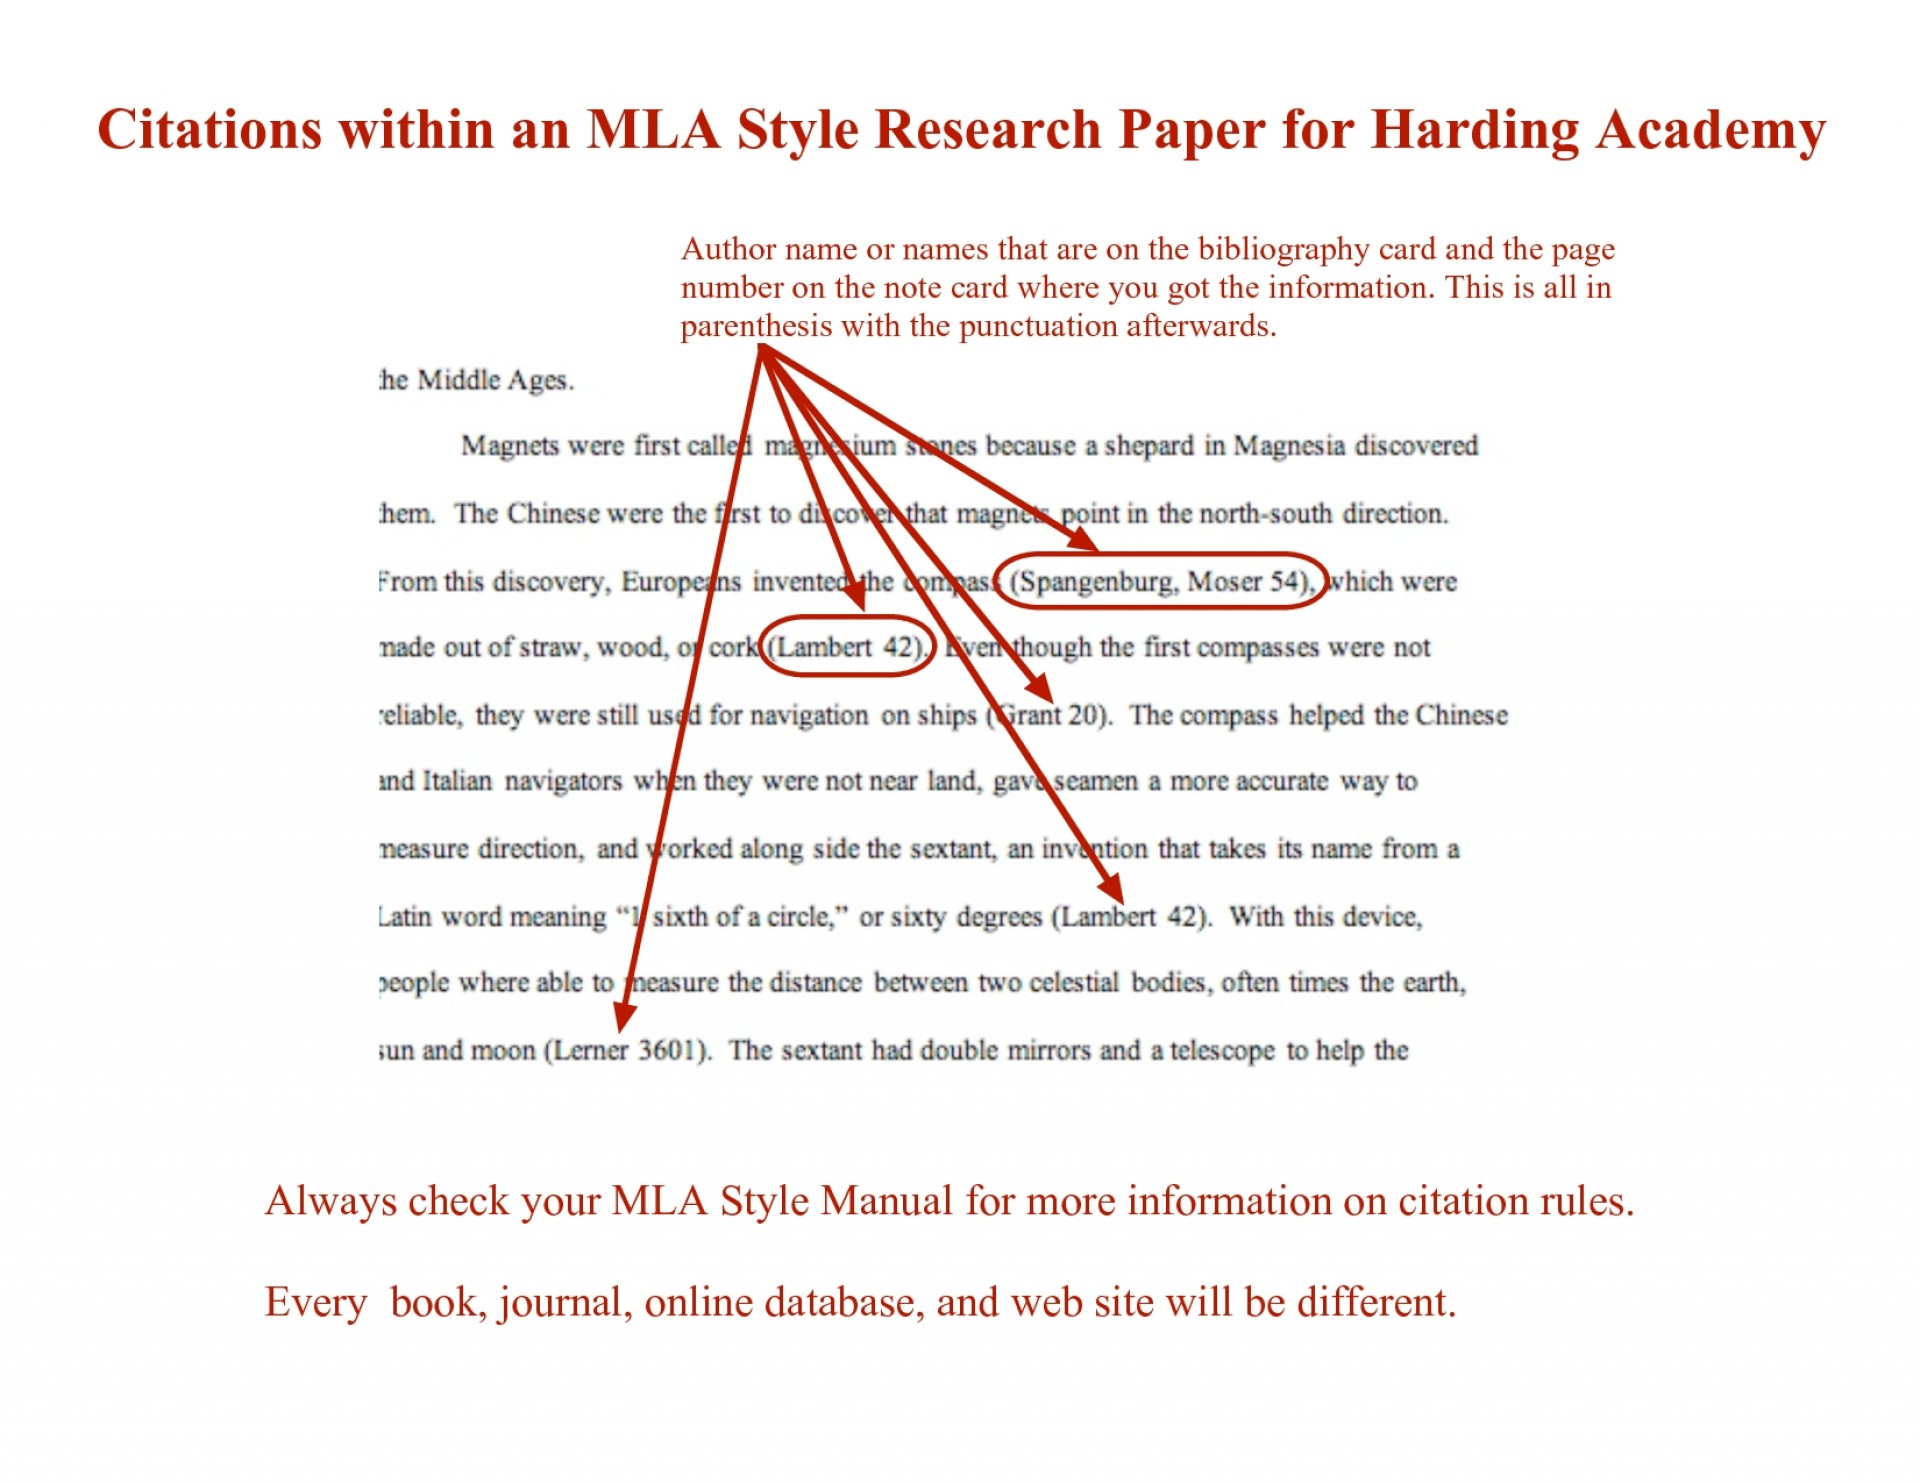 004 How To Cite Sources In Essay Citation Mla Twenty Hueandi Co Collection Of Solutions Quote From Website Stunning Research Papes Essays Apa Striking Text Parenthetical Example Multiple Authors 1920